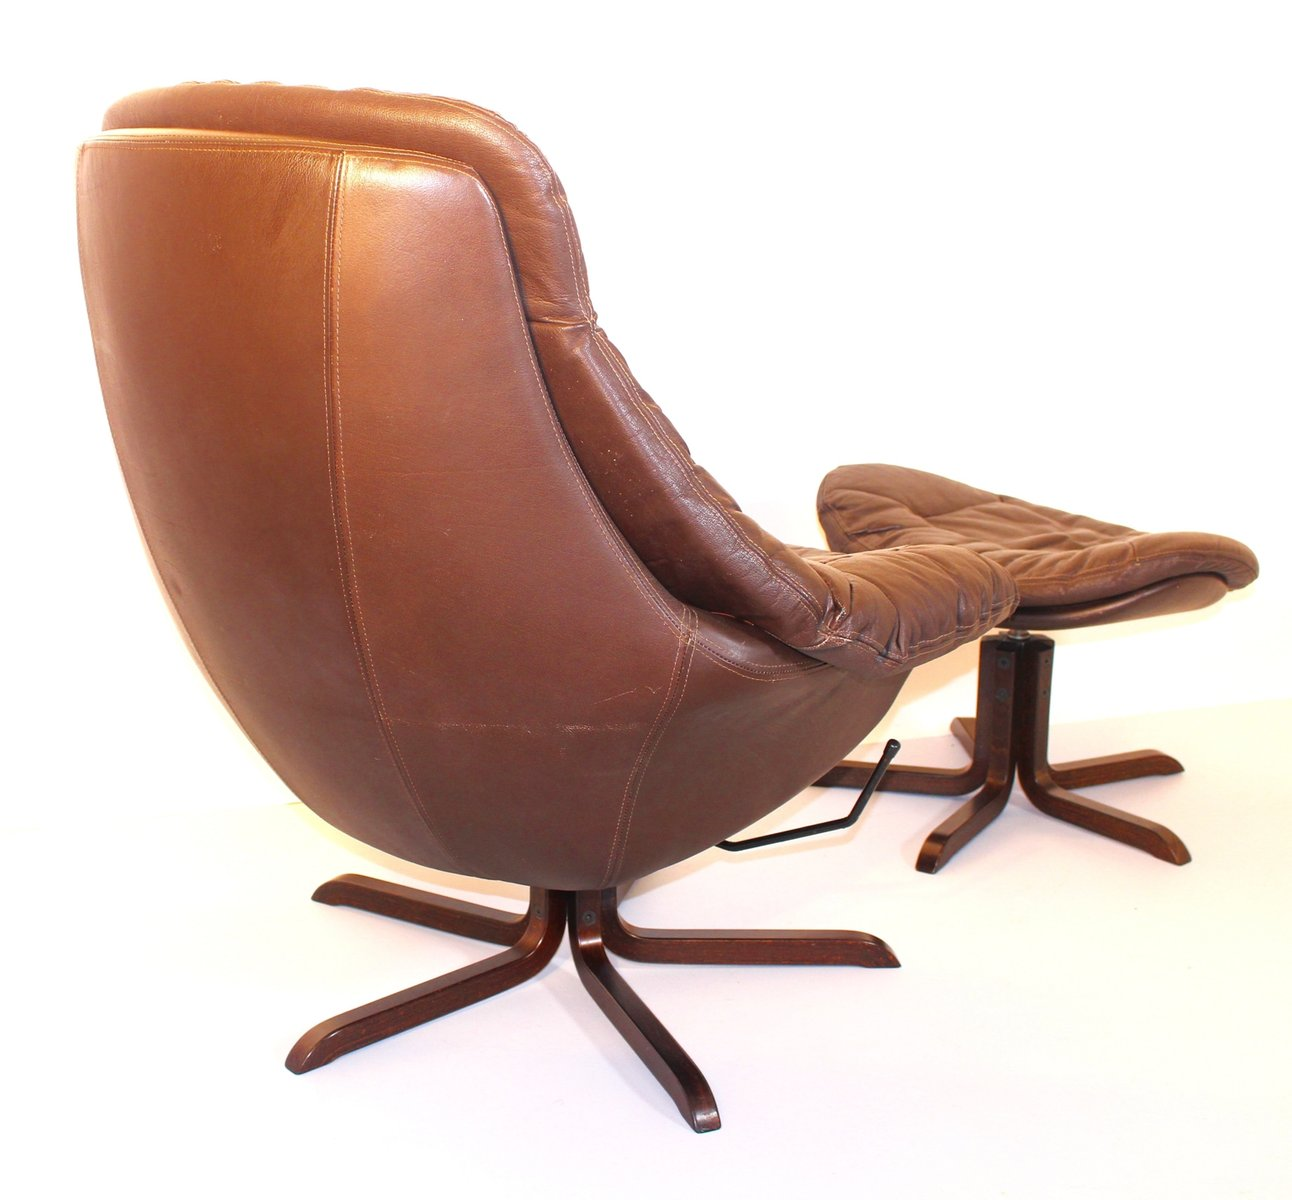 Leather lounge chair with ottoman by h w klein 1970s for Chair ottoman